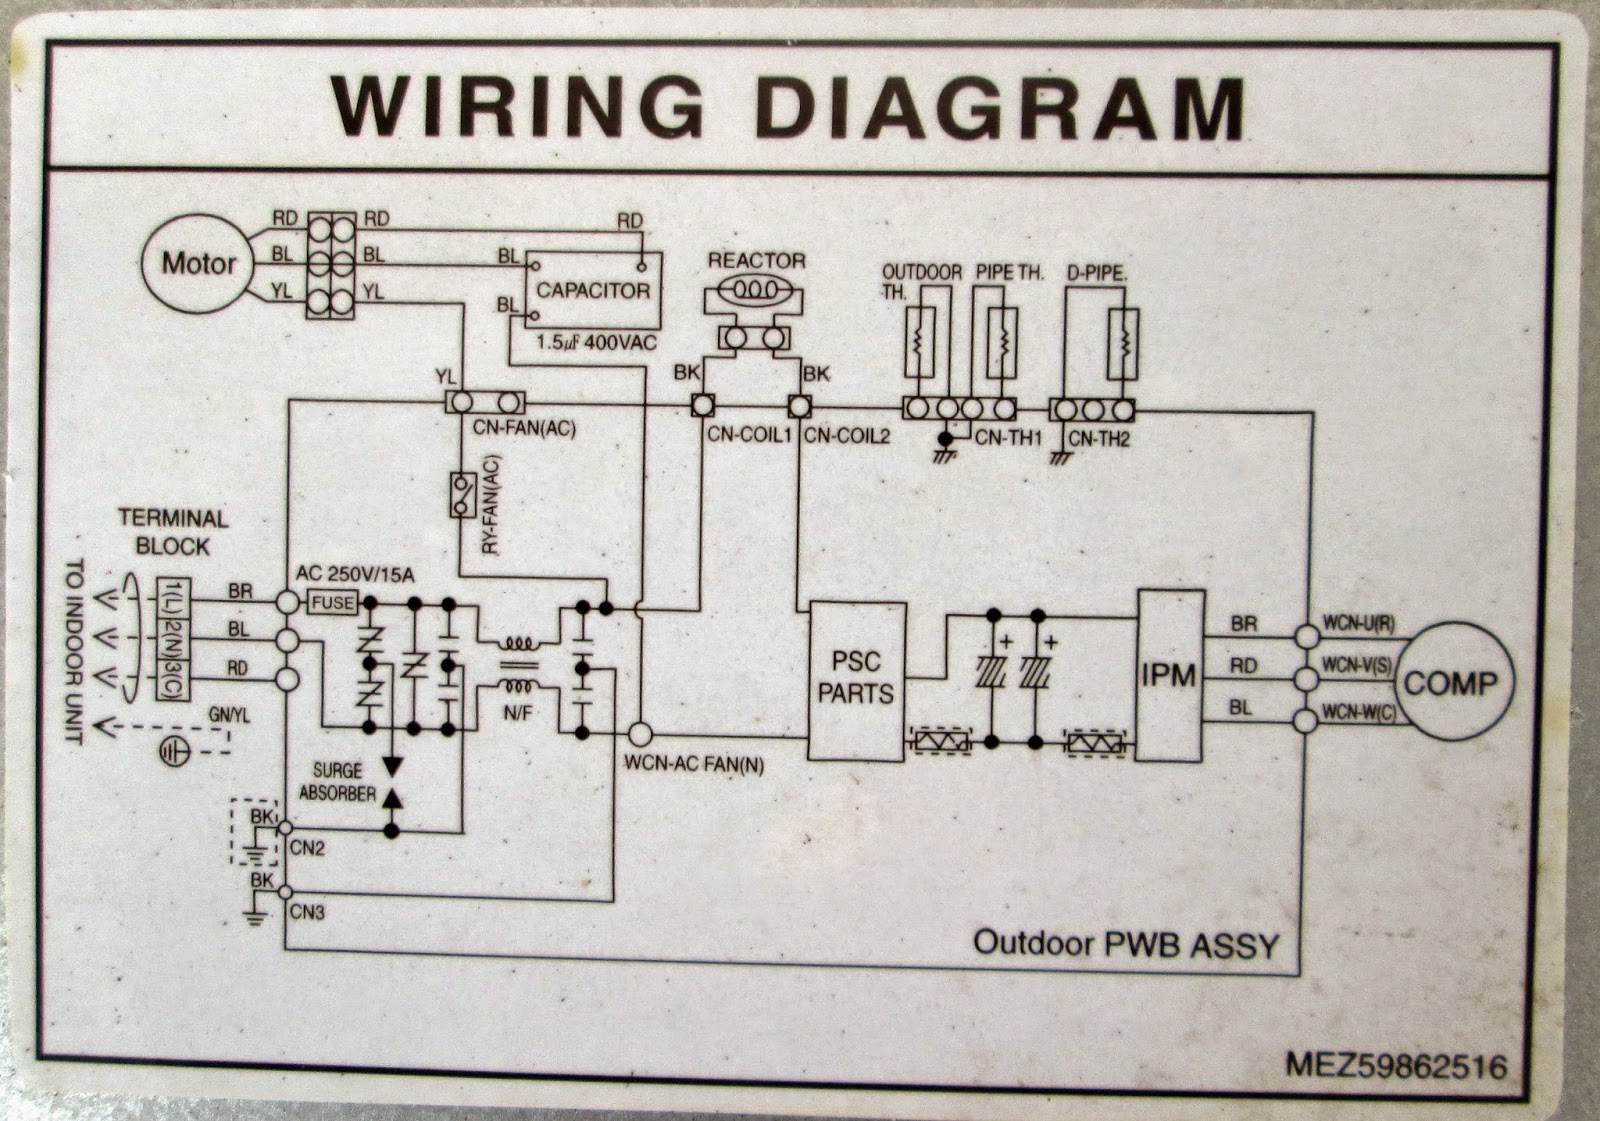 small resolution of split ac unit wiring diagram wiring diagram show wiring diagram of a split air conditioner single